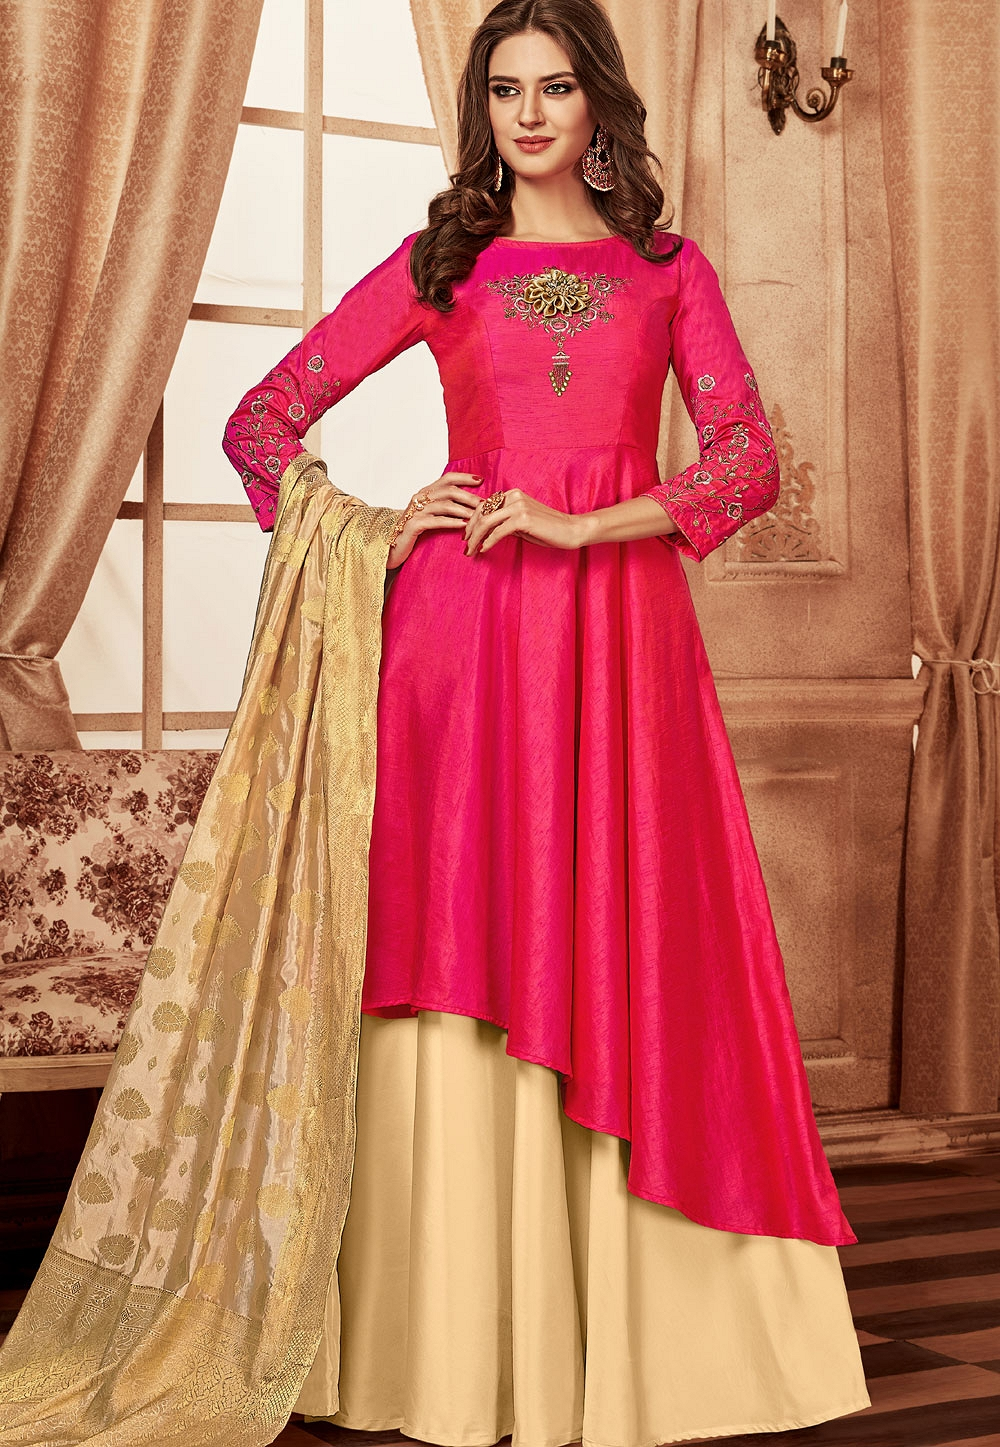 57ed196653 Indian ethnic shopping store, Indian ethnic clothing, Online clothing  shopping store, saree, lehenga choli, salwar kameez, kurta pyjama.